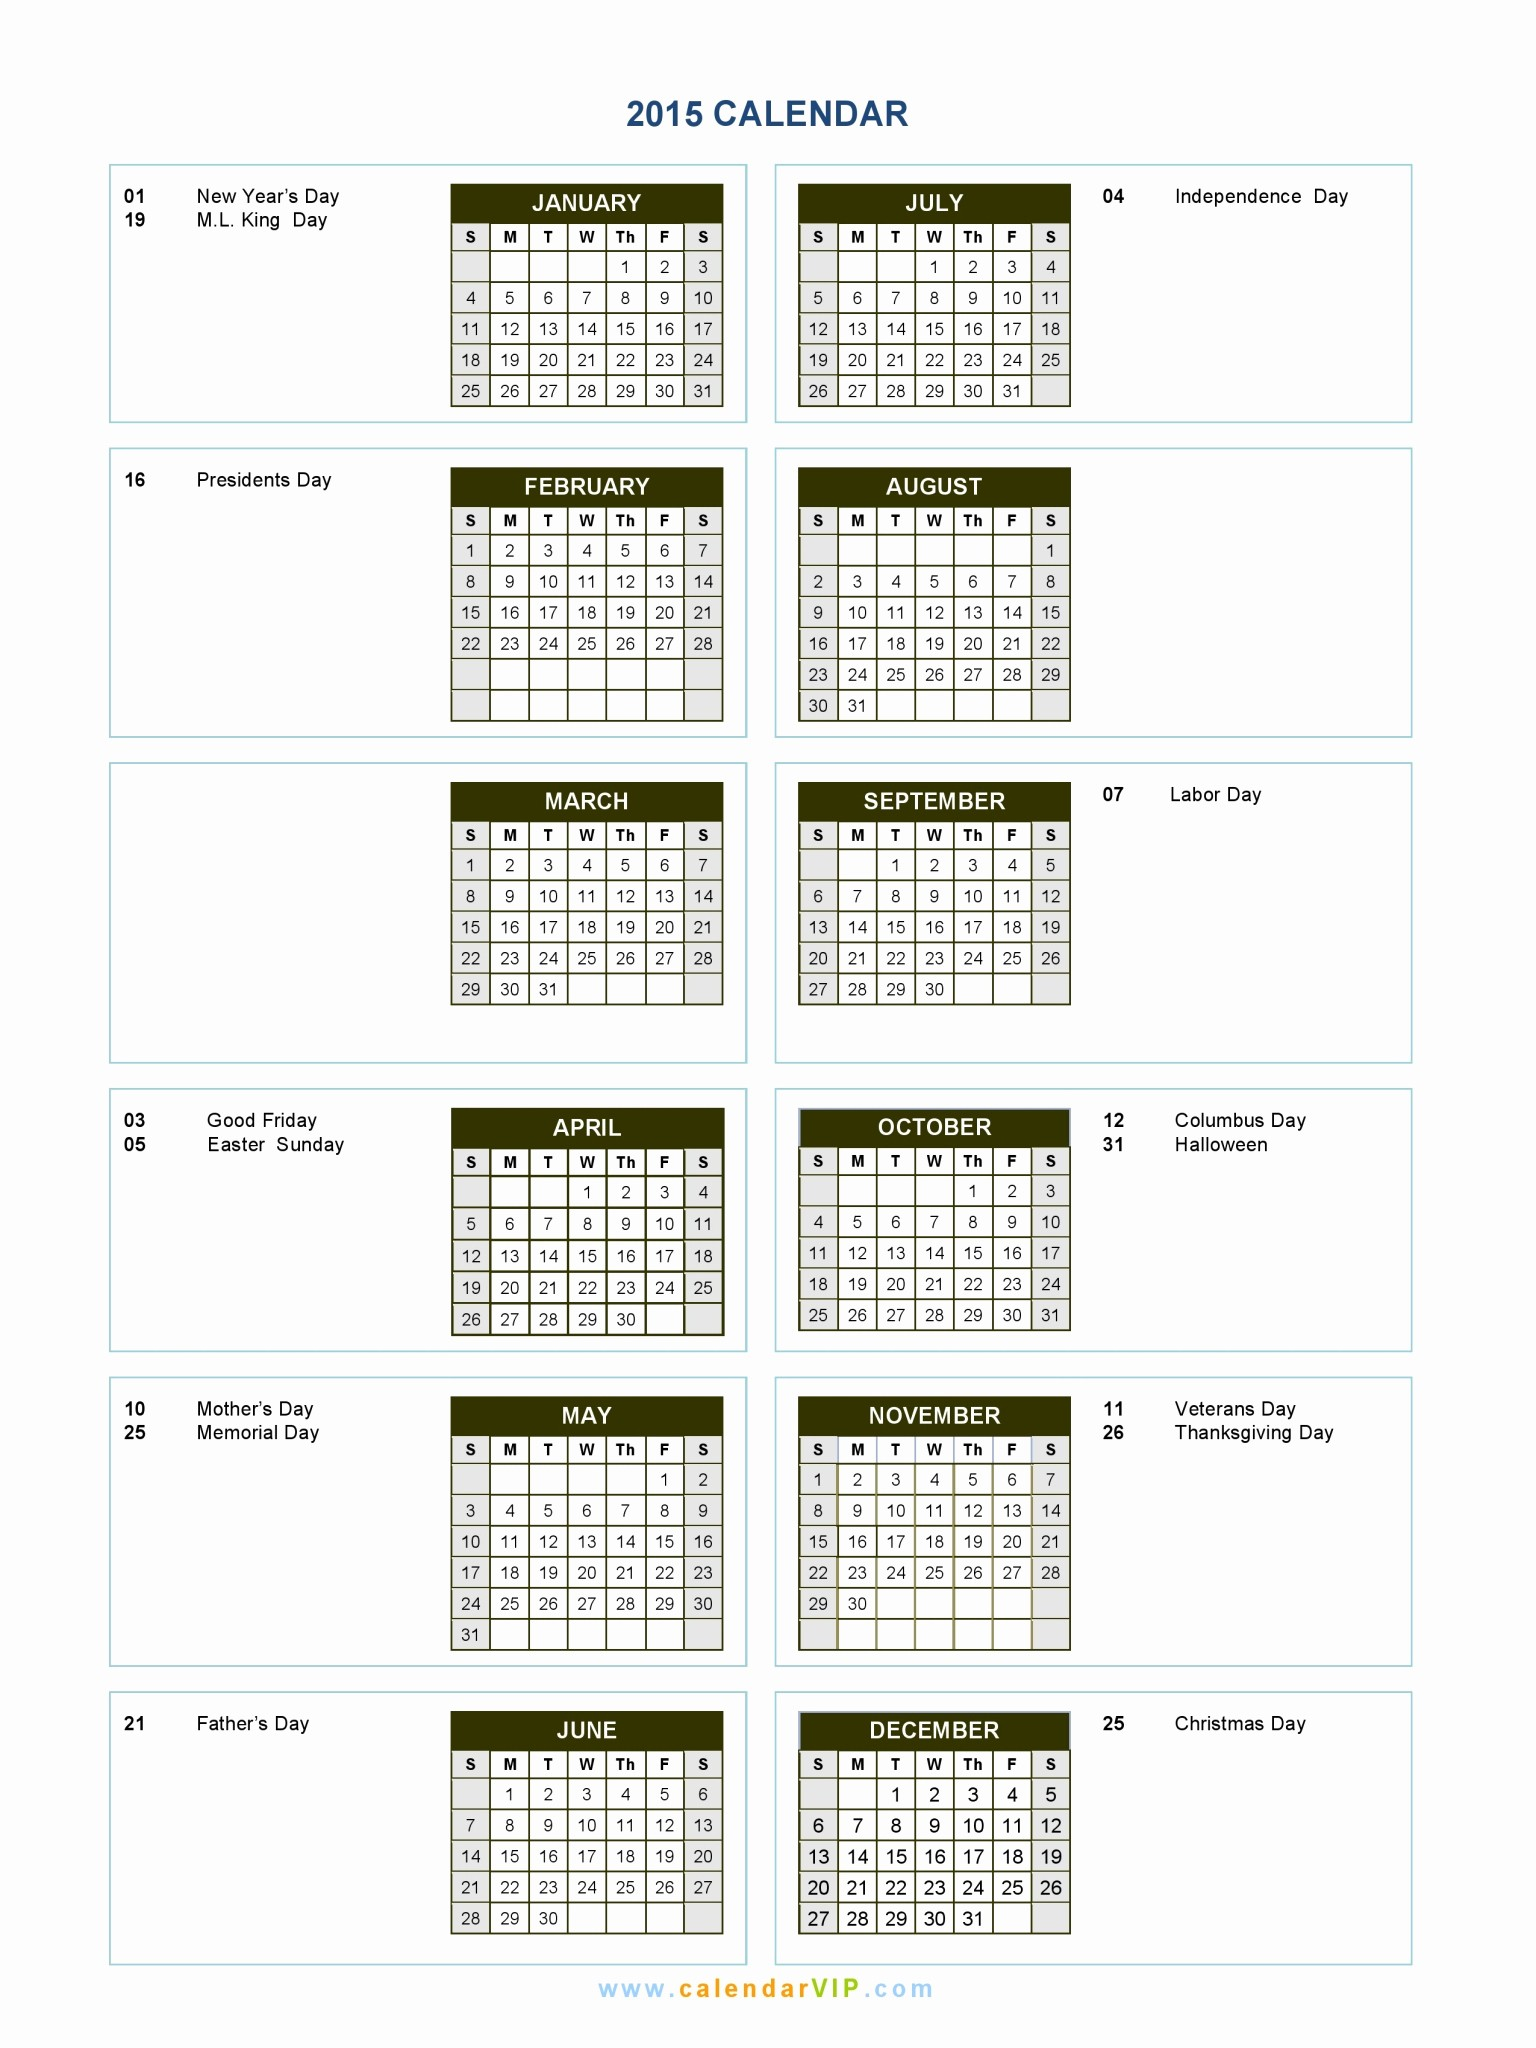 Full Year Calendar Template 2015 Inspirational 2015 Calendar Blank Printable Calendar Template In Pdf